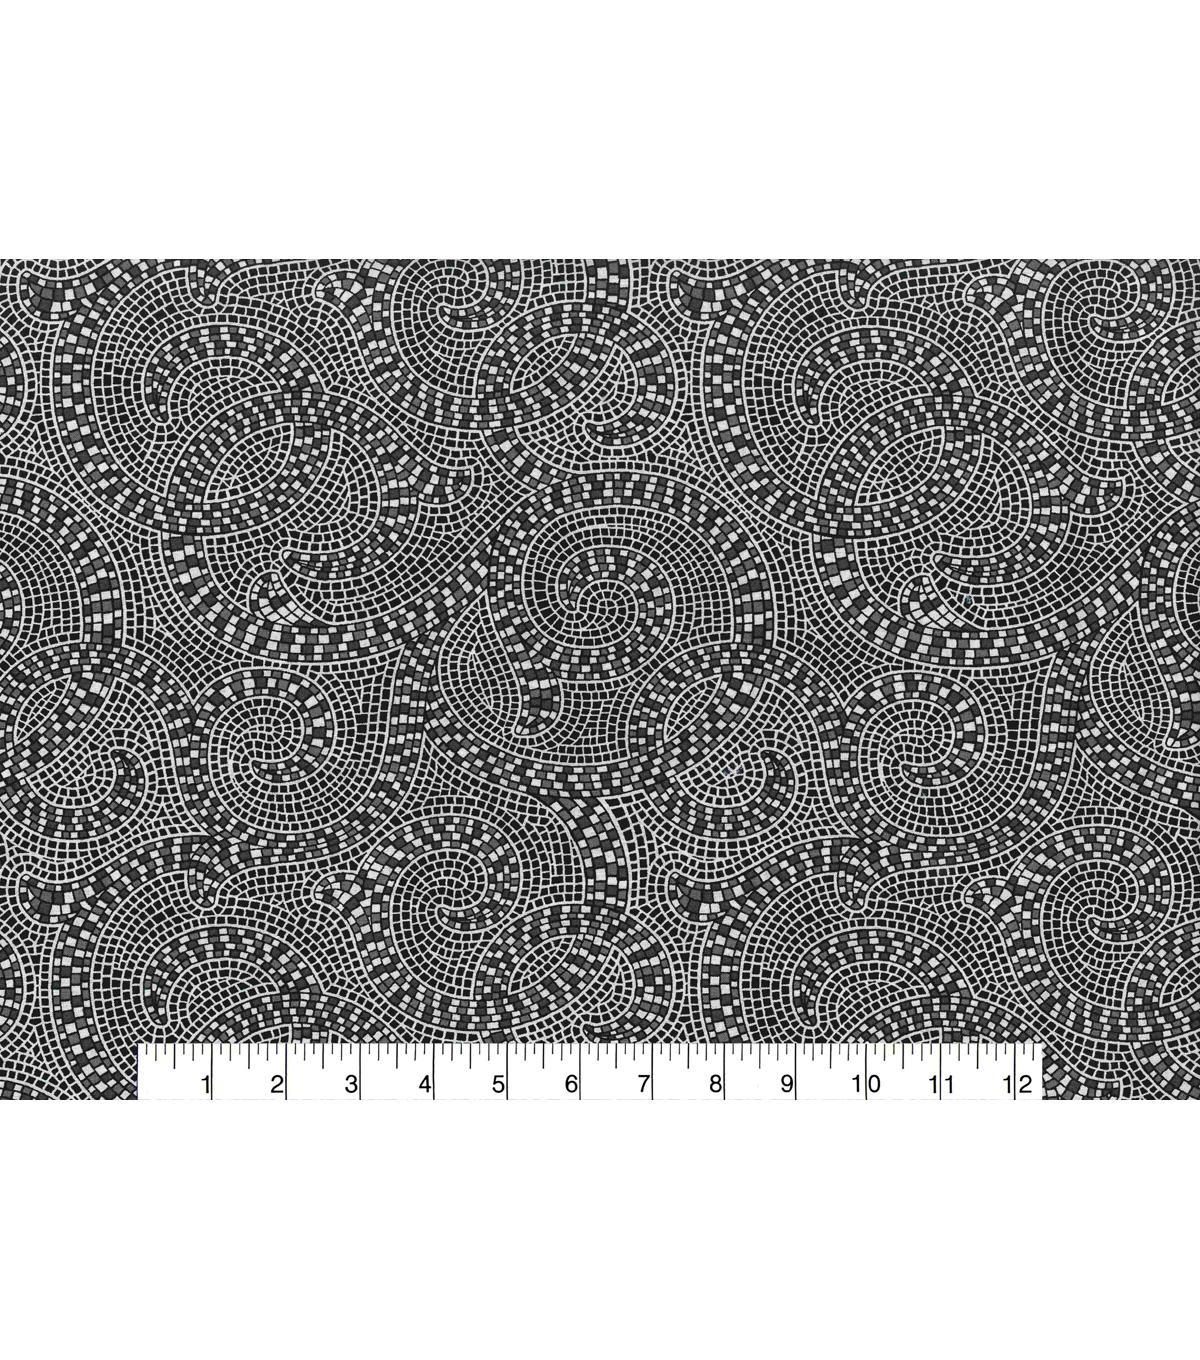 Keepsake Calico Cotton Fabric -Mosaic Black Gray